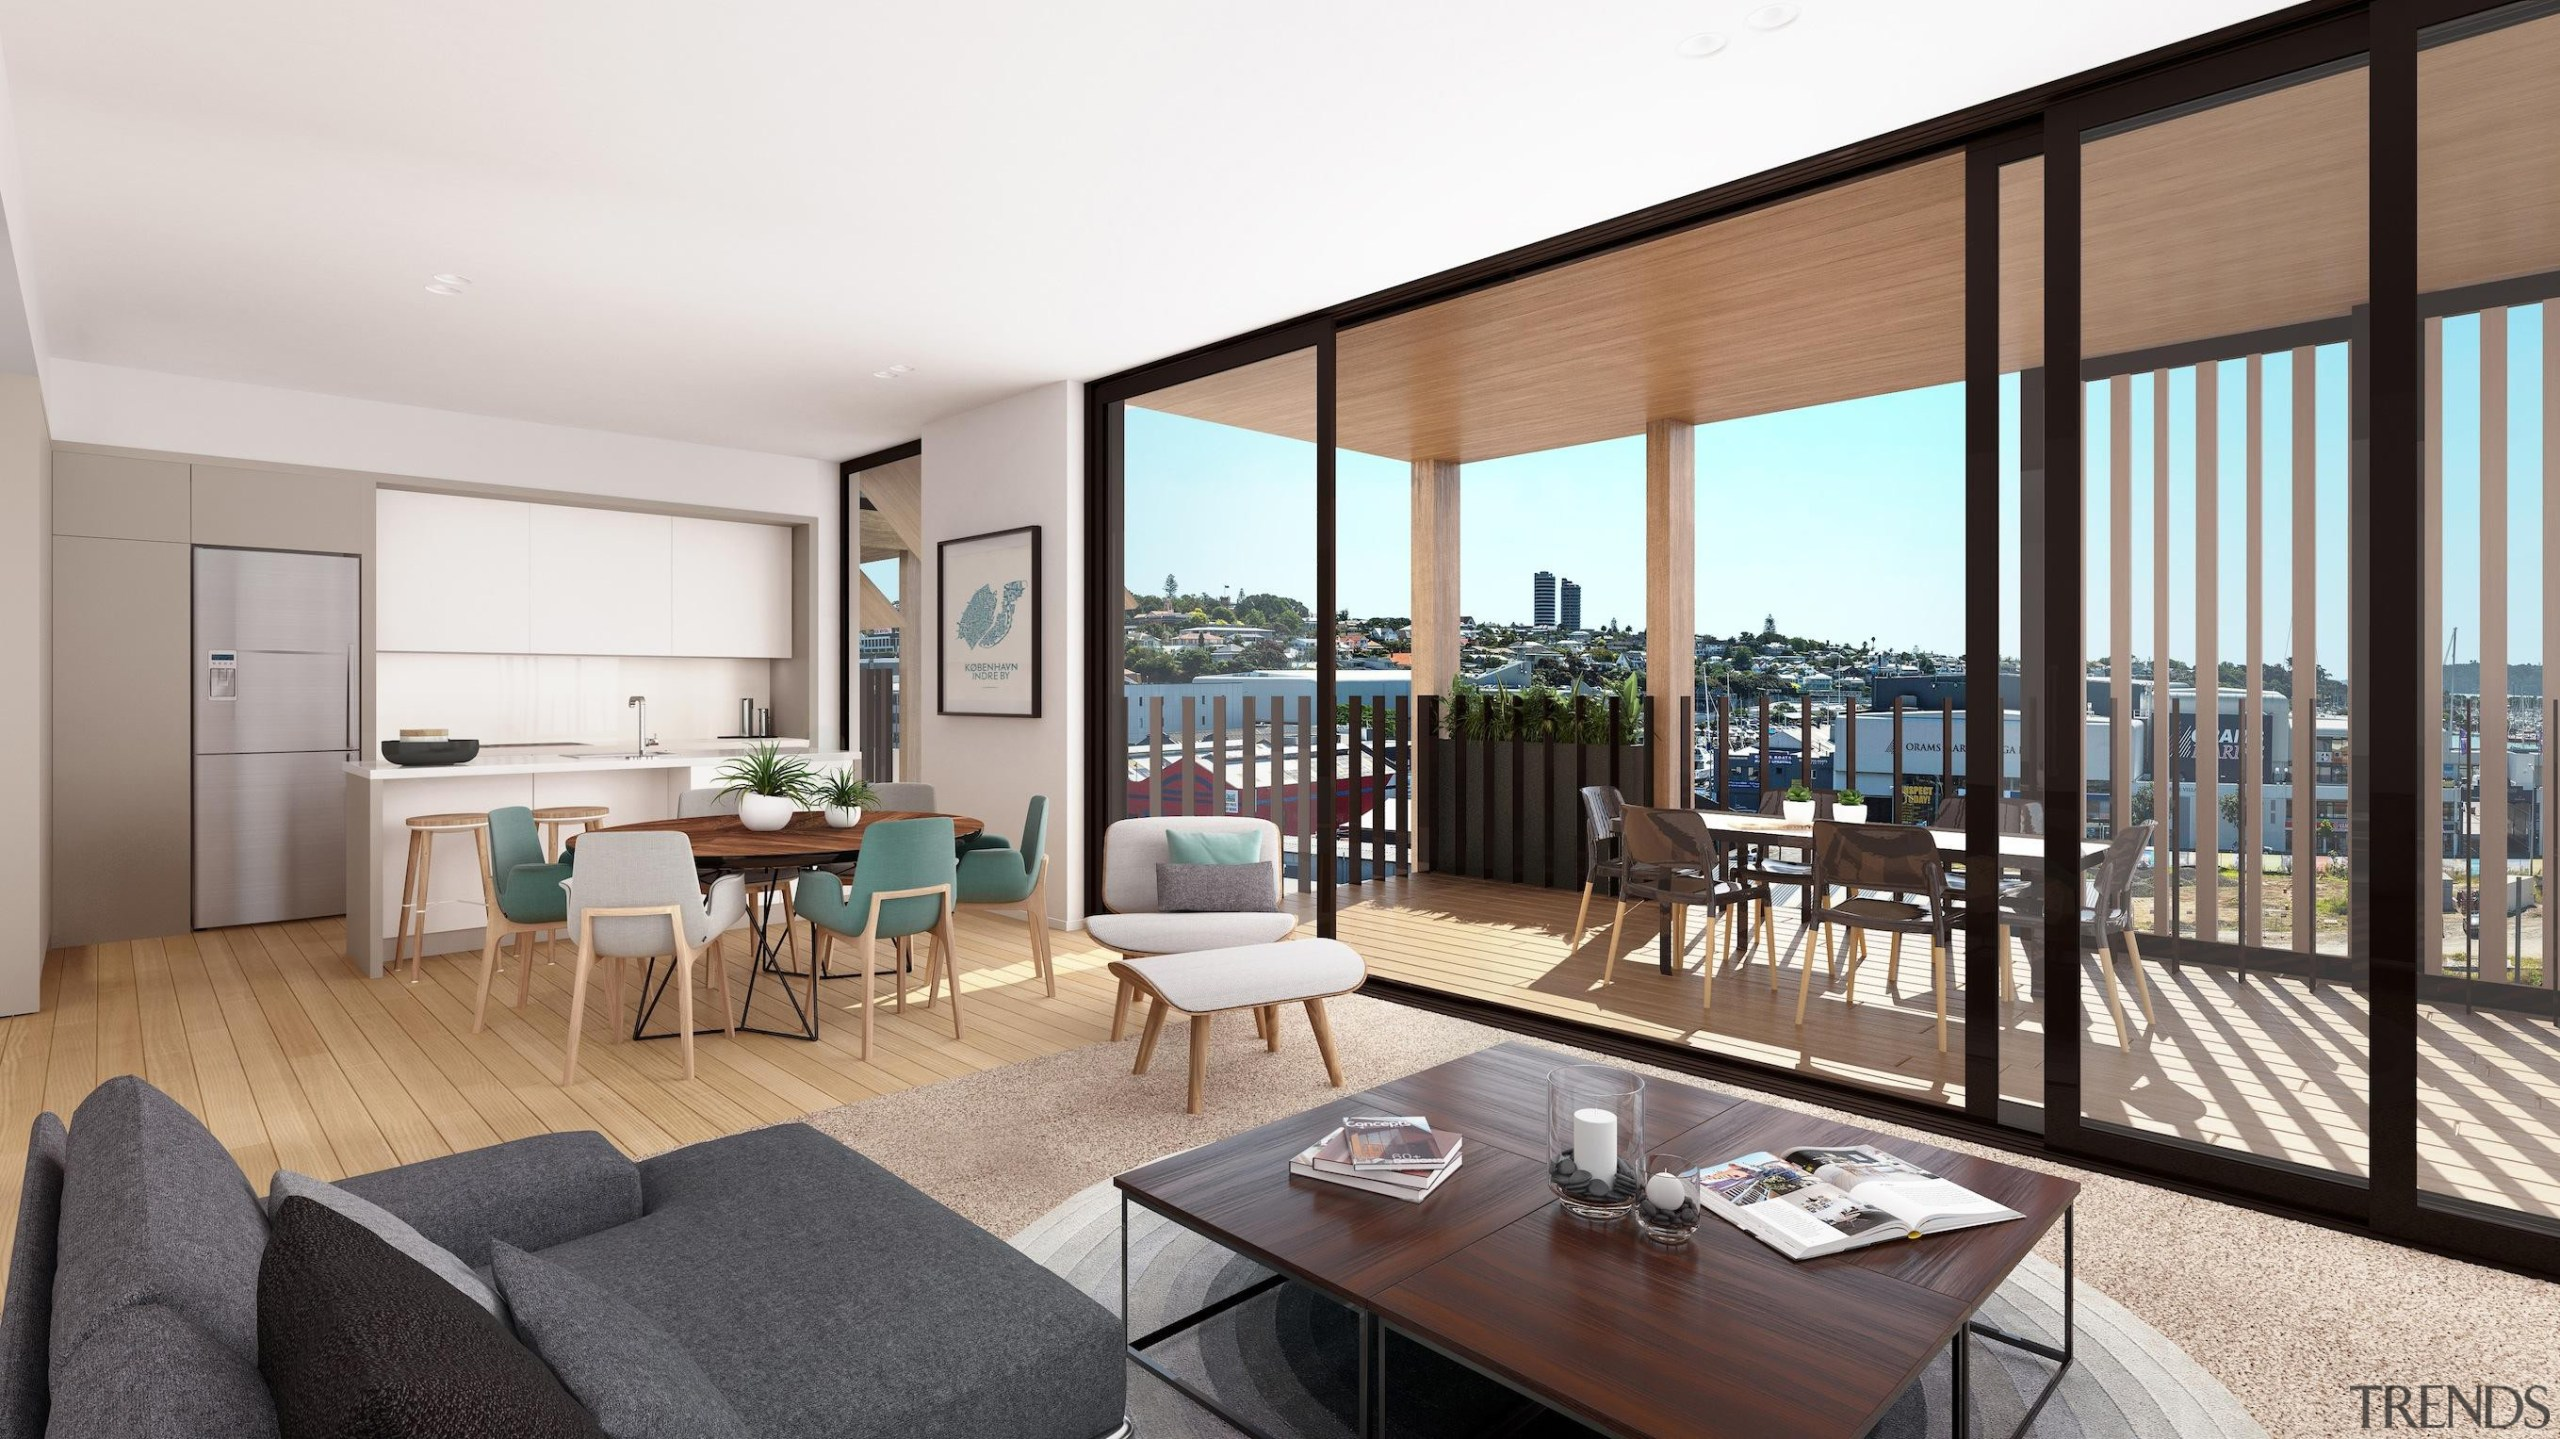 The first stage of Wynyard Central is an apartment, interior design, penthouse apartment, property, real estate, window, white